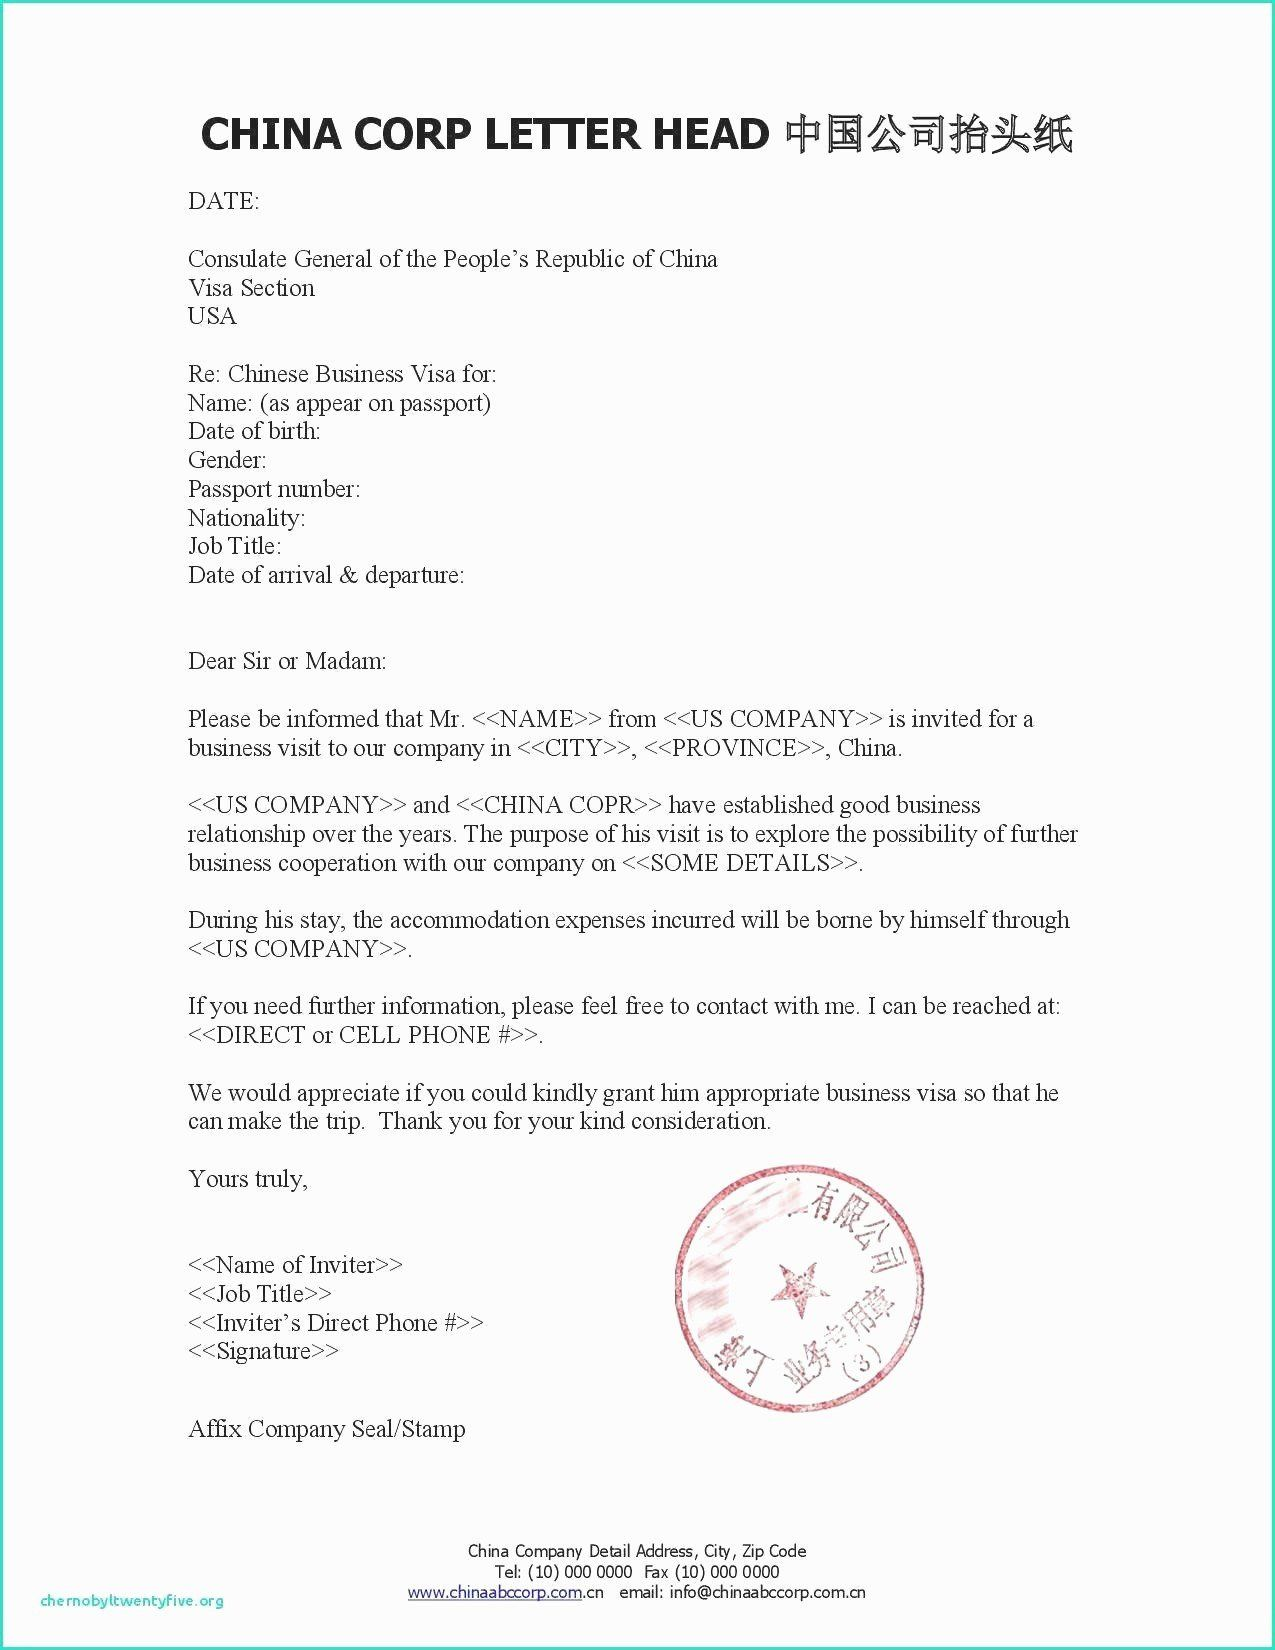 Cover Letter Heading Template Fresh New Letters In French Closing Bob Clan Business Letter Template Formal Letter Template Business Letter Format [ 1650 x 1275 Pixel ]